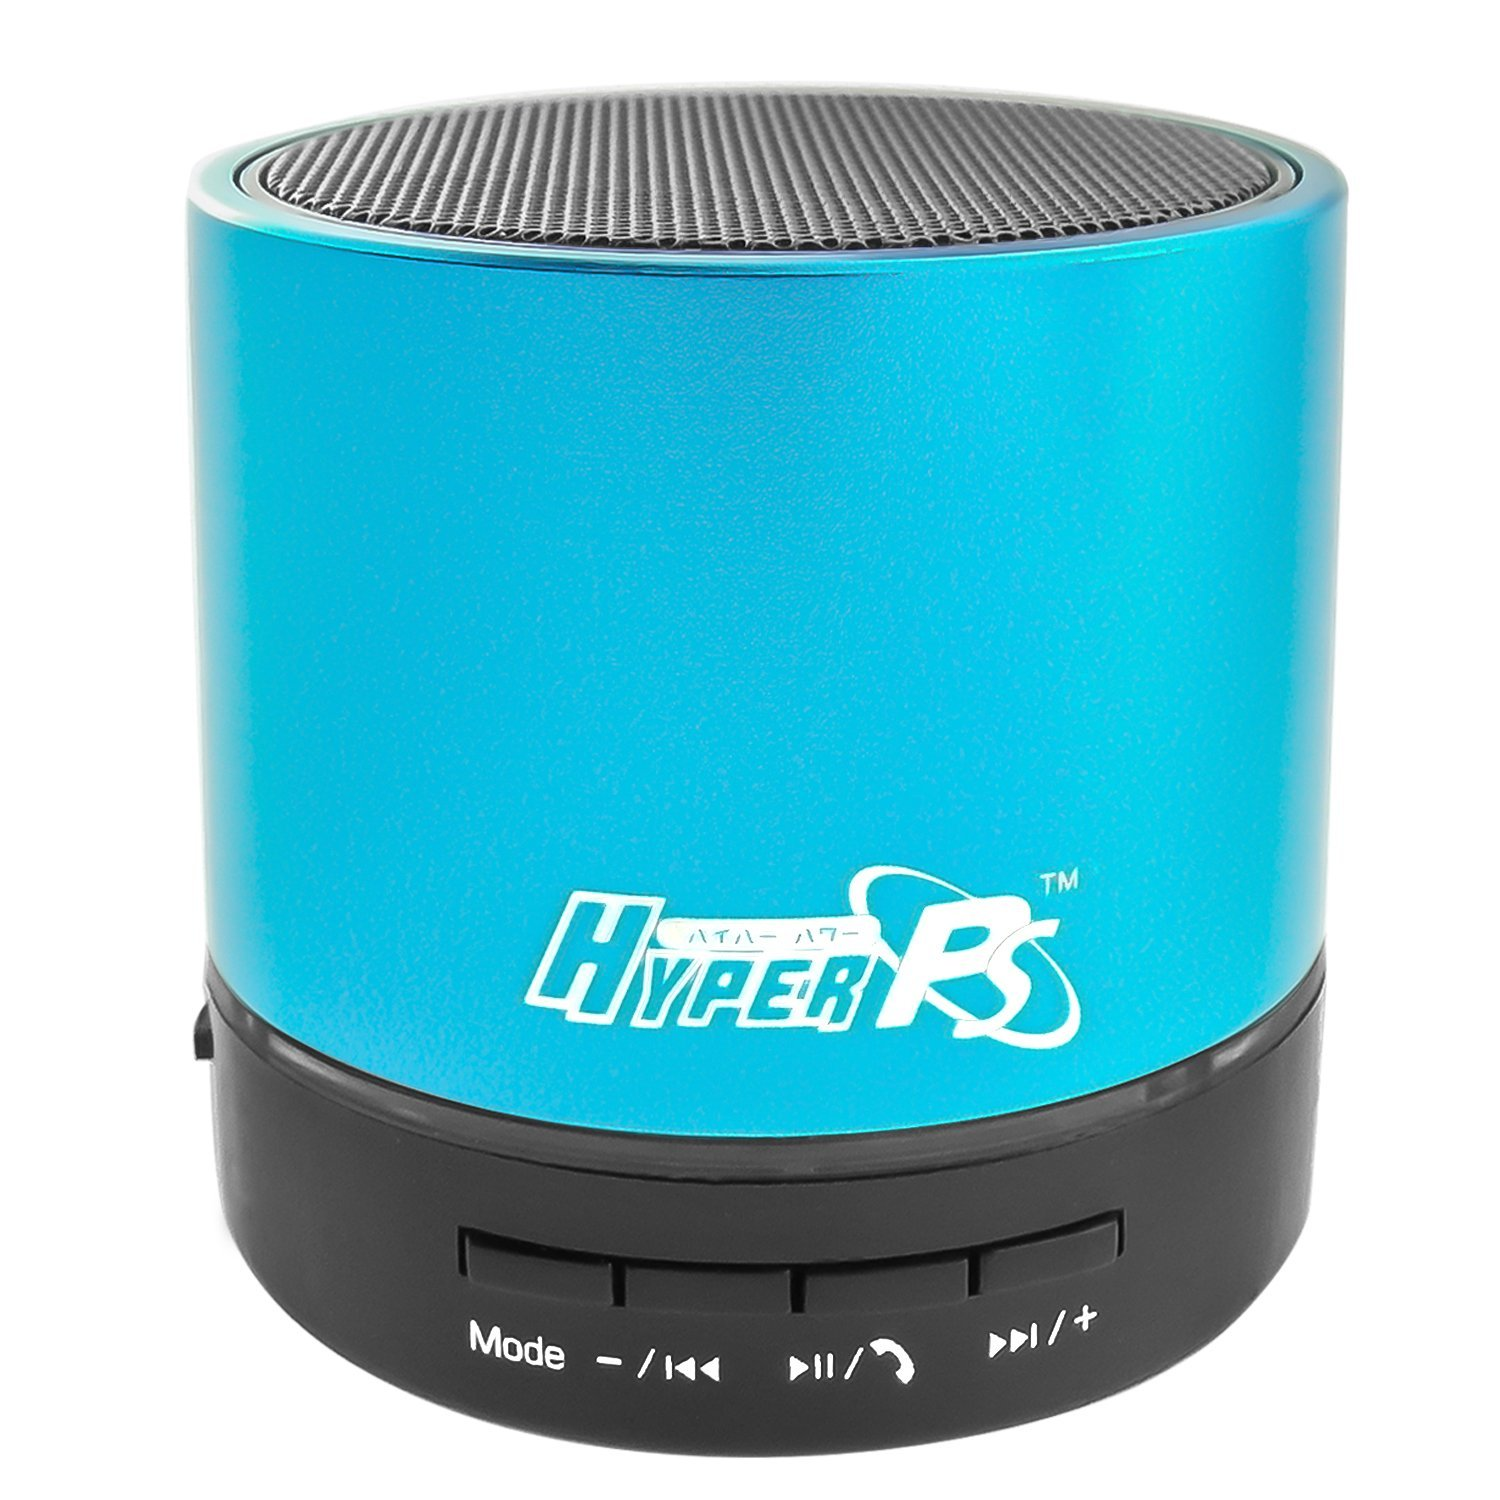 HyperPS - Bluetooth Wireless Mini Portable Super Bass Speaker with Built-in Mp3 Player Supporting to Play from Micro SD Card / USB Thumb Drive & Microphone for Handfree Phone call For iphone Samsung Tablet PC poweradd™ ultra portable wireless bluetooth speaker with built in microphone and rechargeable battery for iphone ipad samsung tablets laptops mp3 players and other bluetooth enable devices